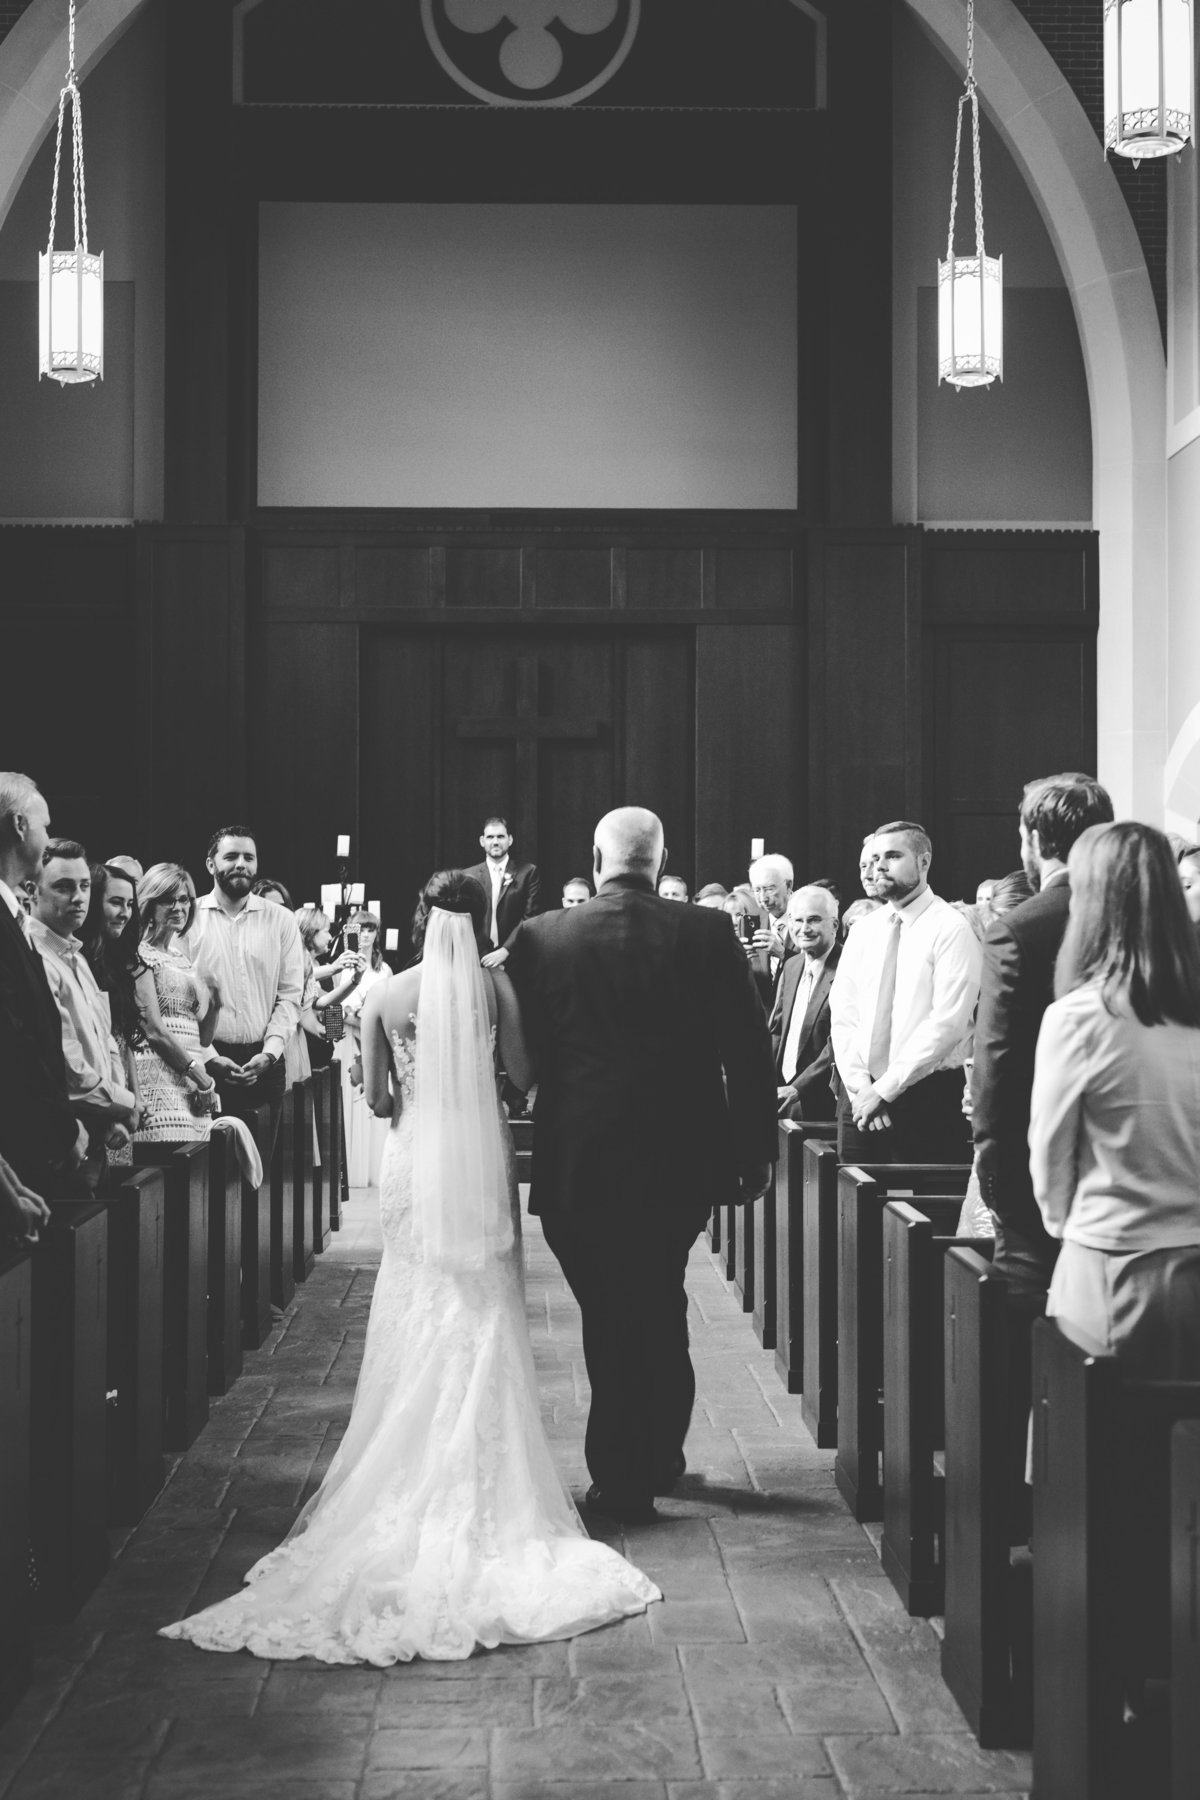 Baptist Wedding - Church Wedding - Church Weddings - Nashville Church Weddings - nashville TN - Nashville Weddings - Nashville Wedding - Couples Who Love Jesus - SouthernBride - SouthernBrides - Nashville Bride031